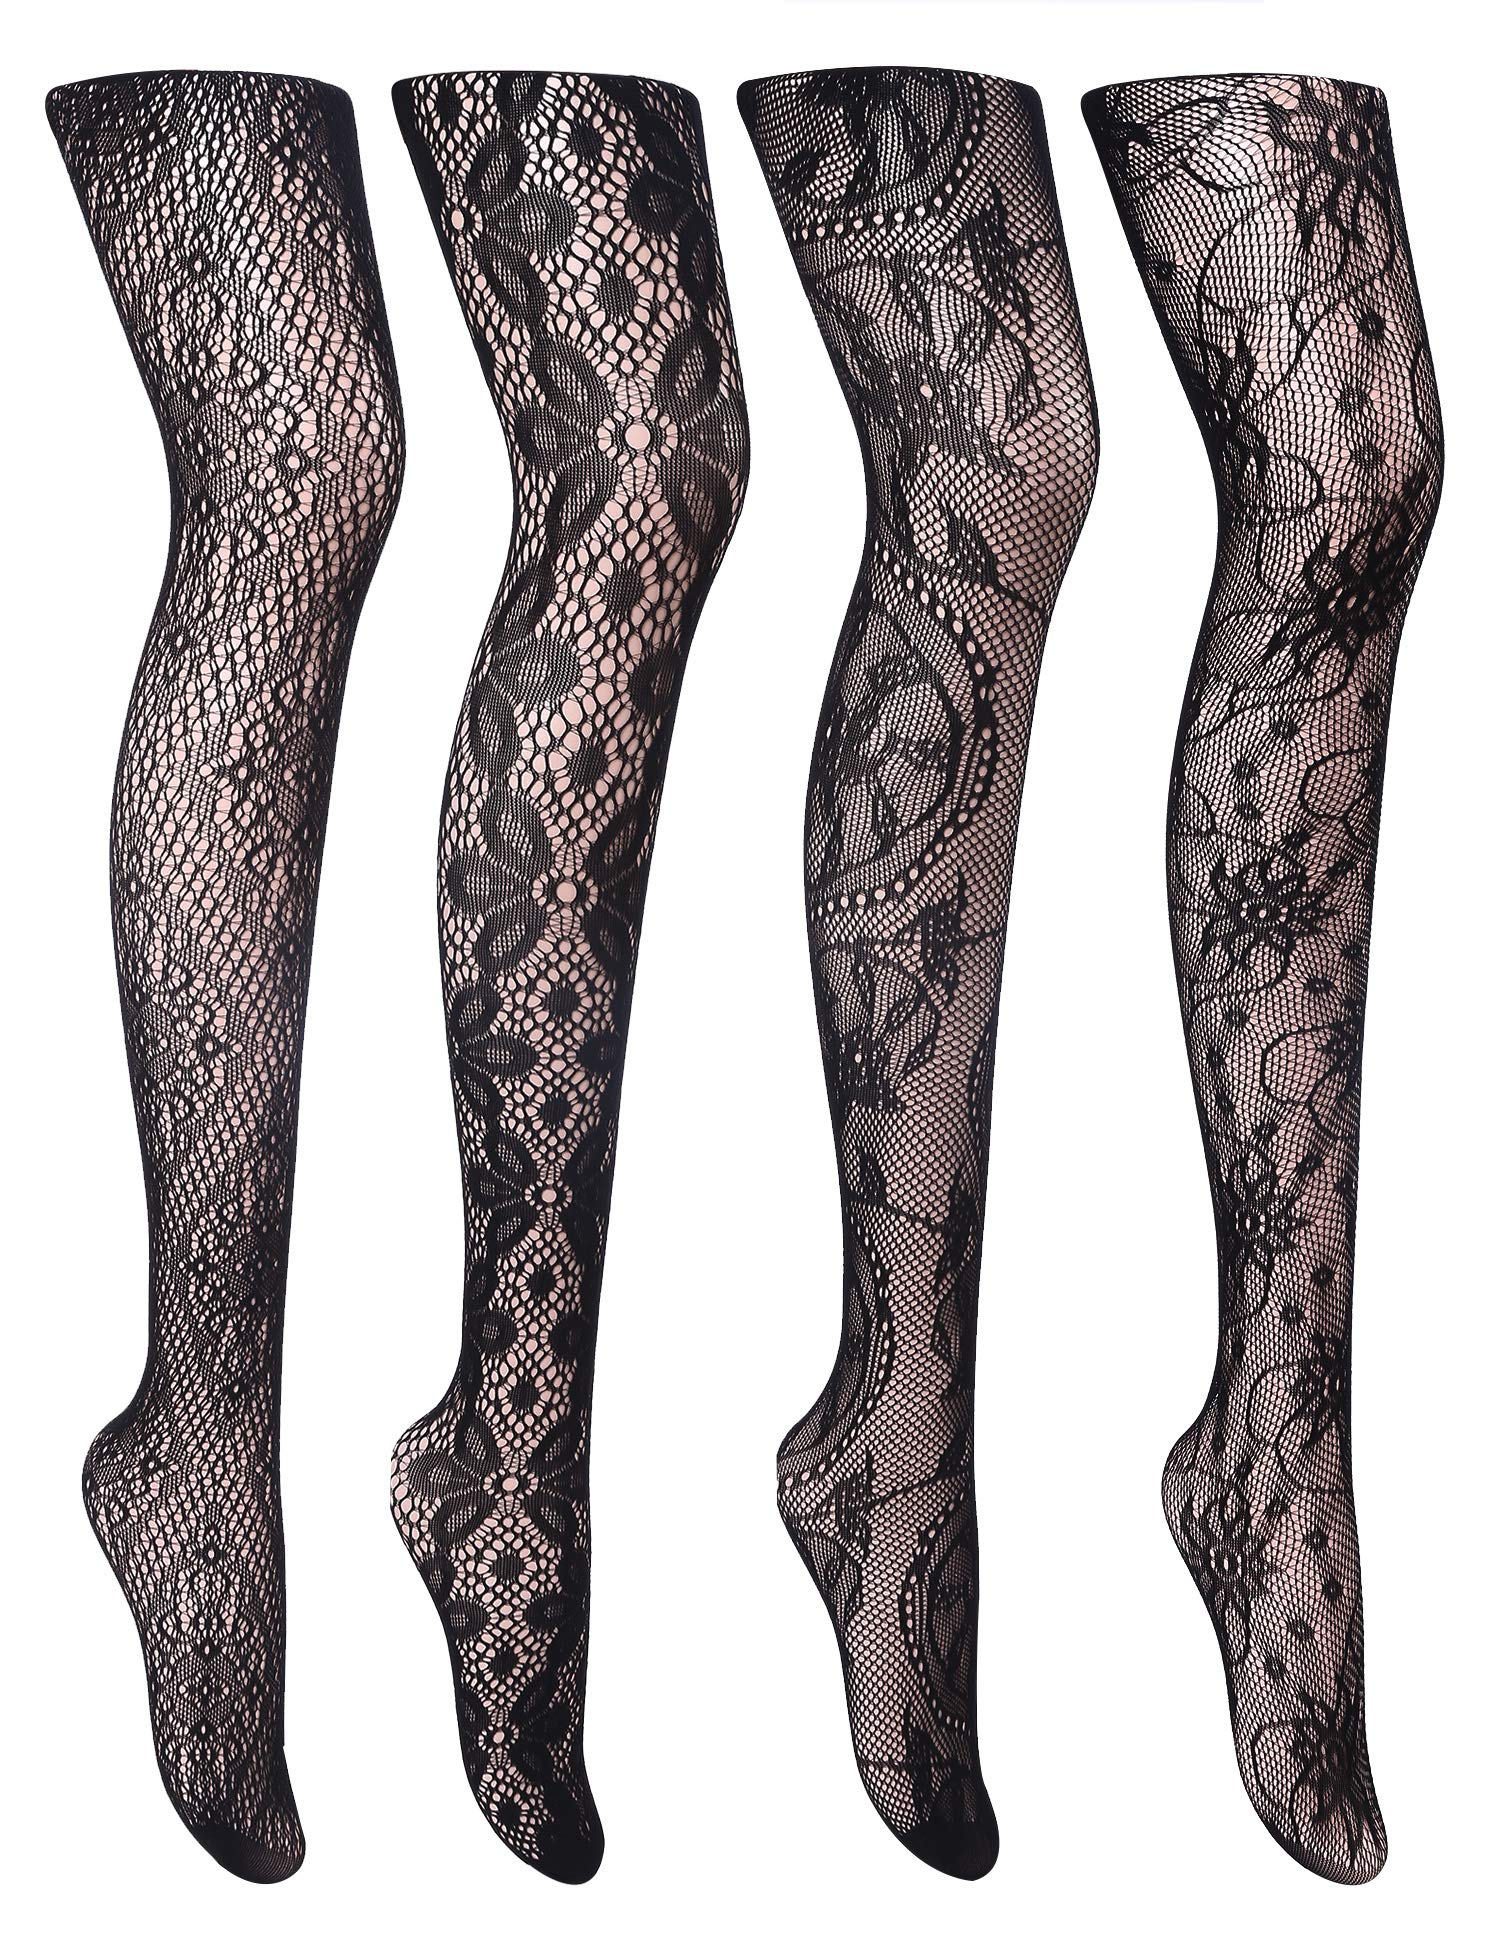 Girls Mesh Fishnet Lace Stocking Legging Tight Musical Notes Pattern Black White